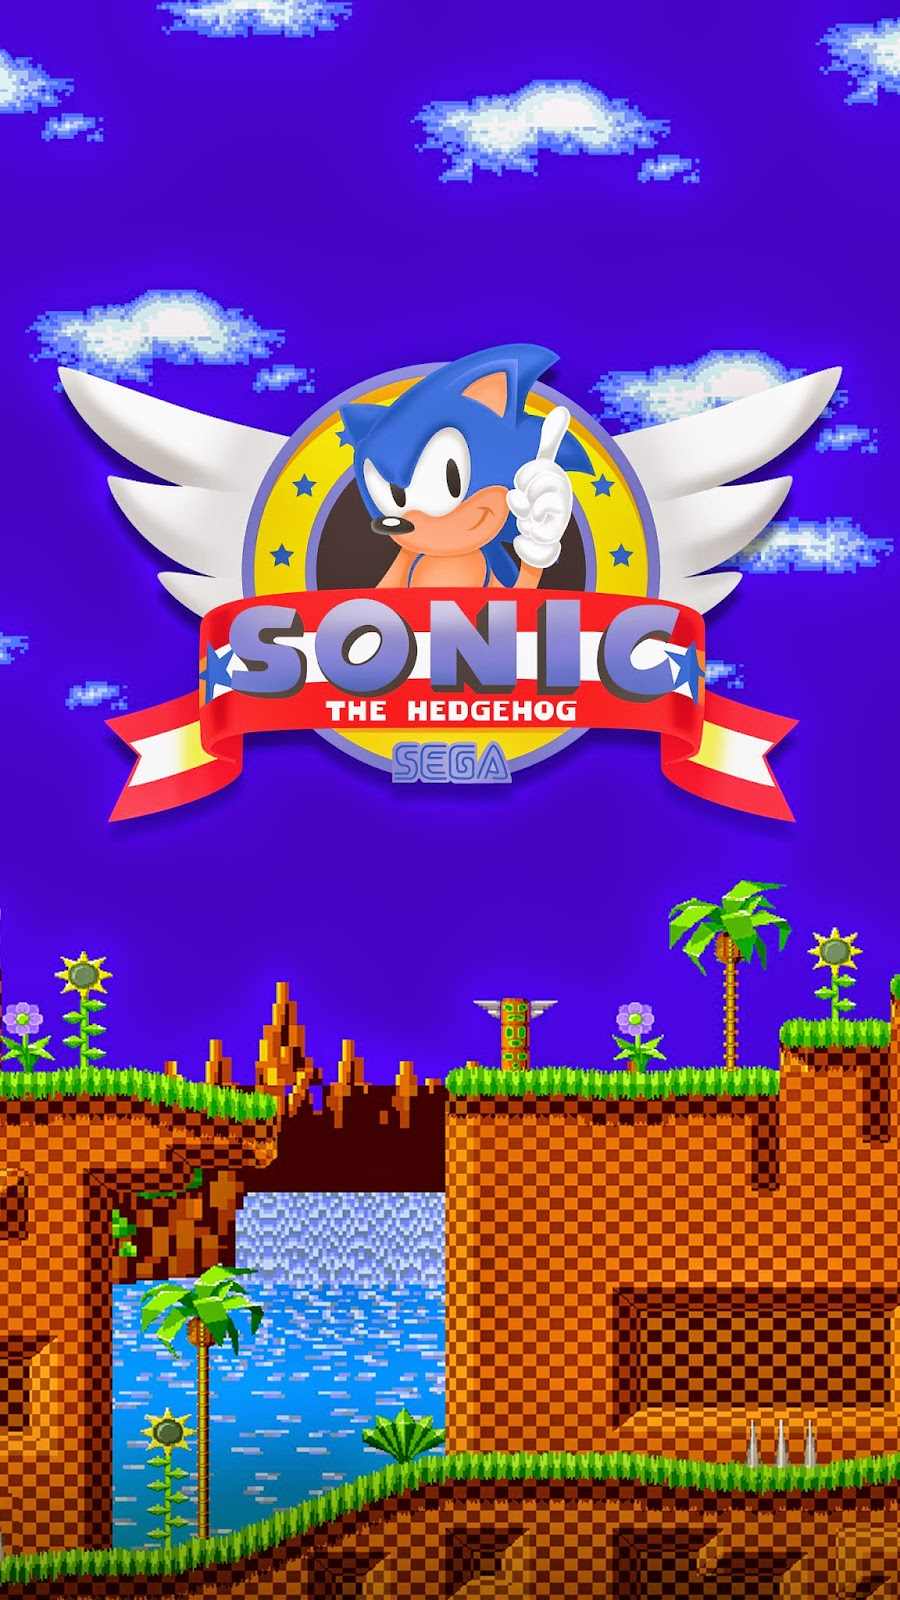 Wallpapers do Sonic 2